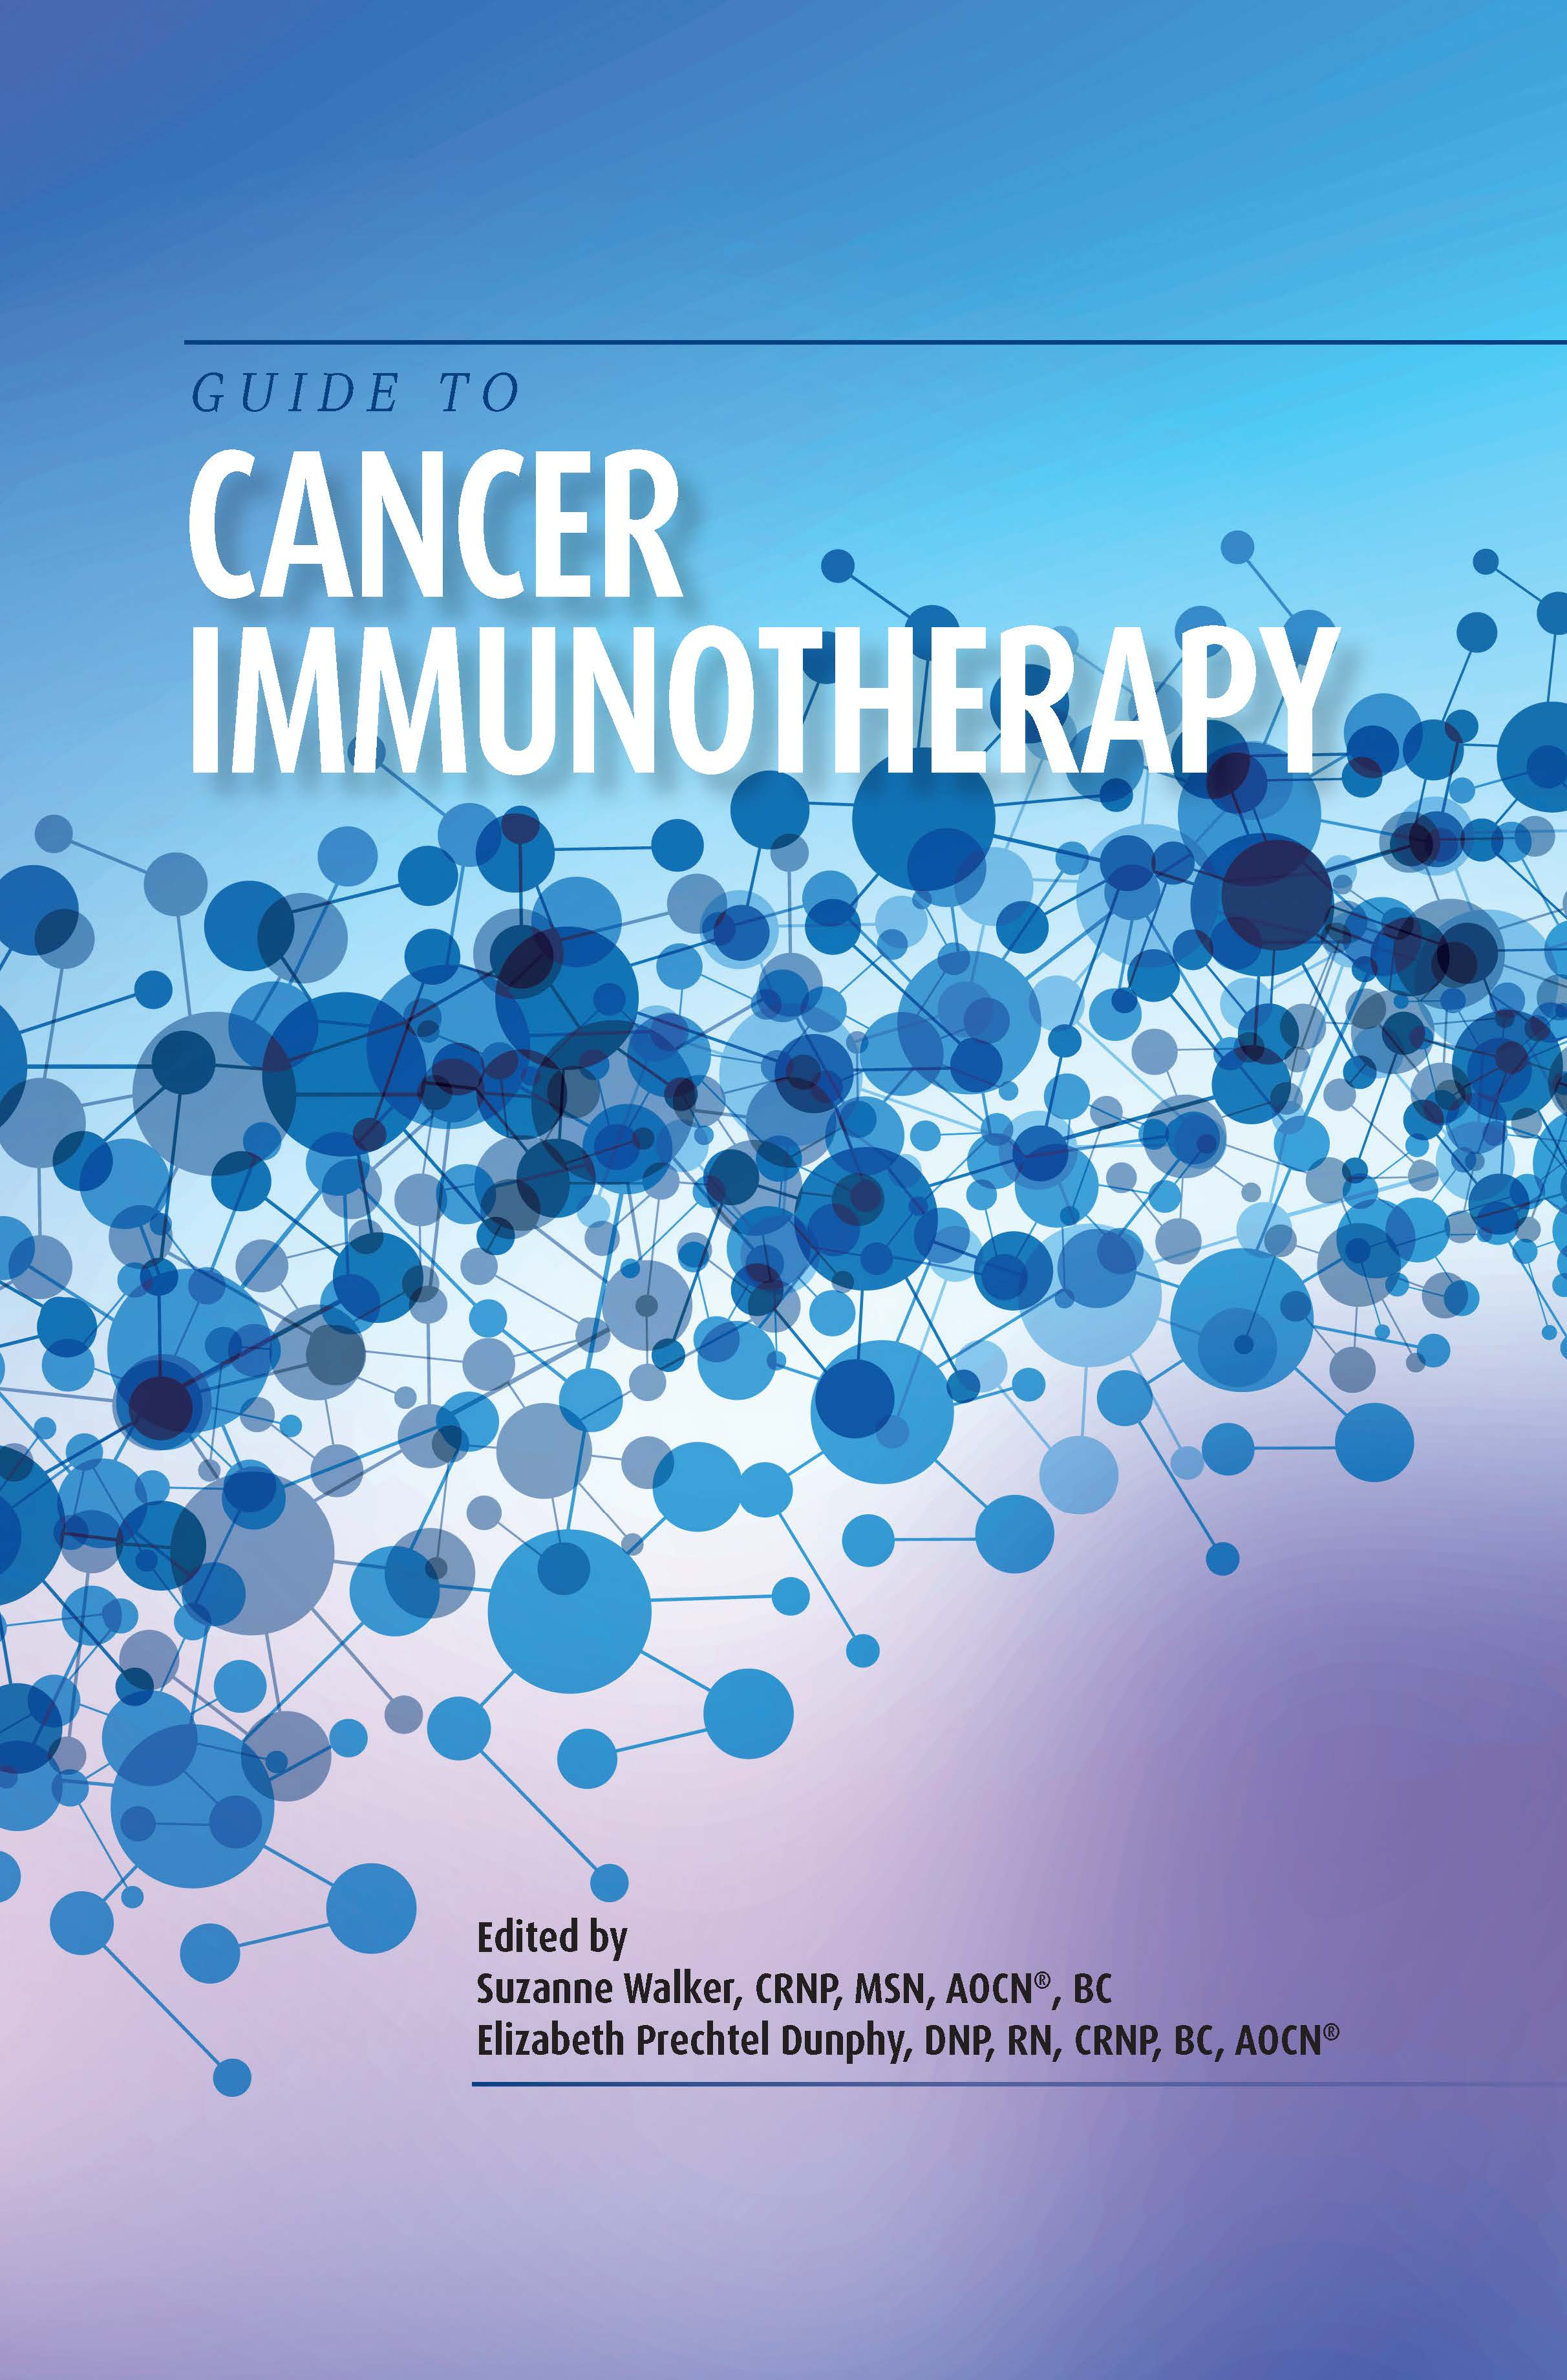 Radiation Oncology Nurse Cover Letter Guide To Cancer Immunotherapy Ons